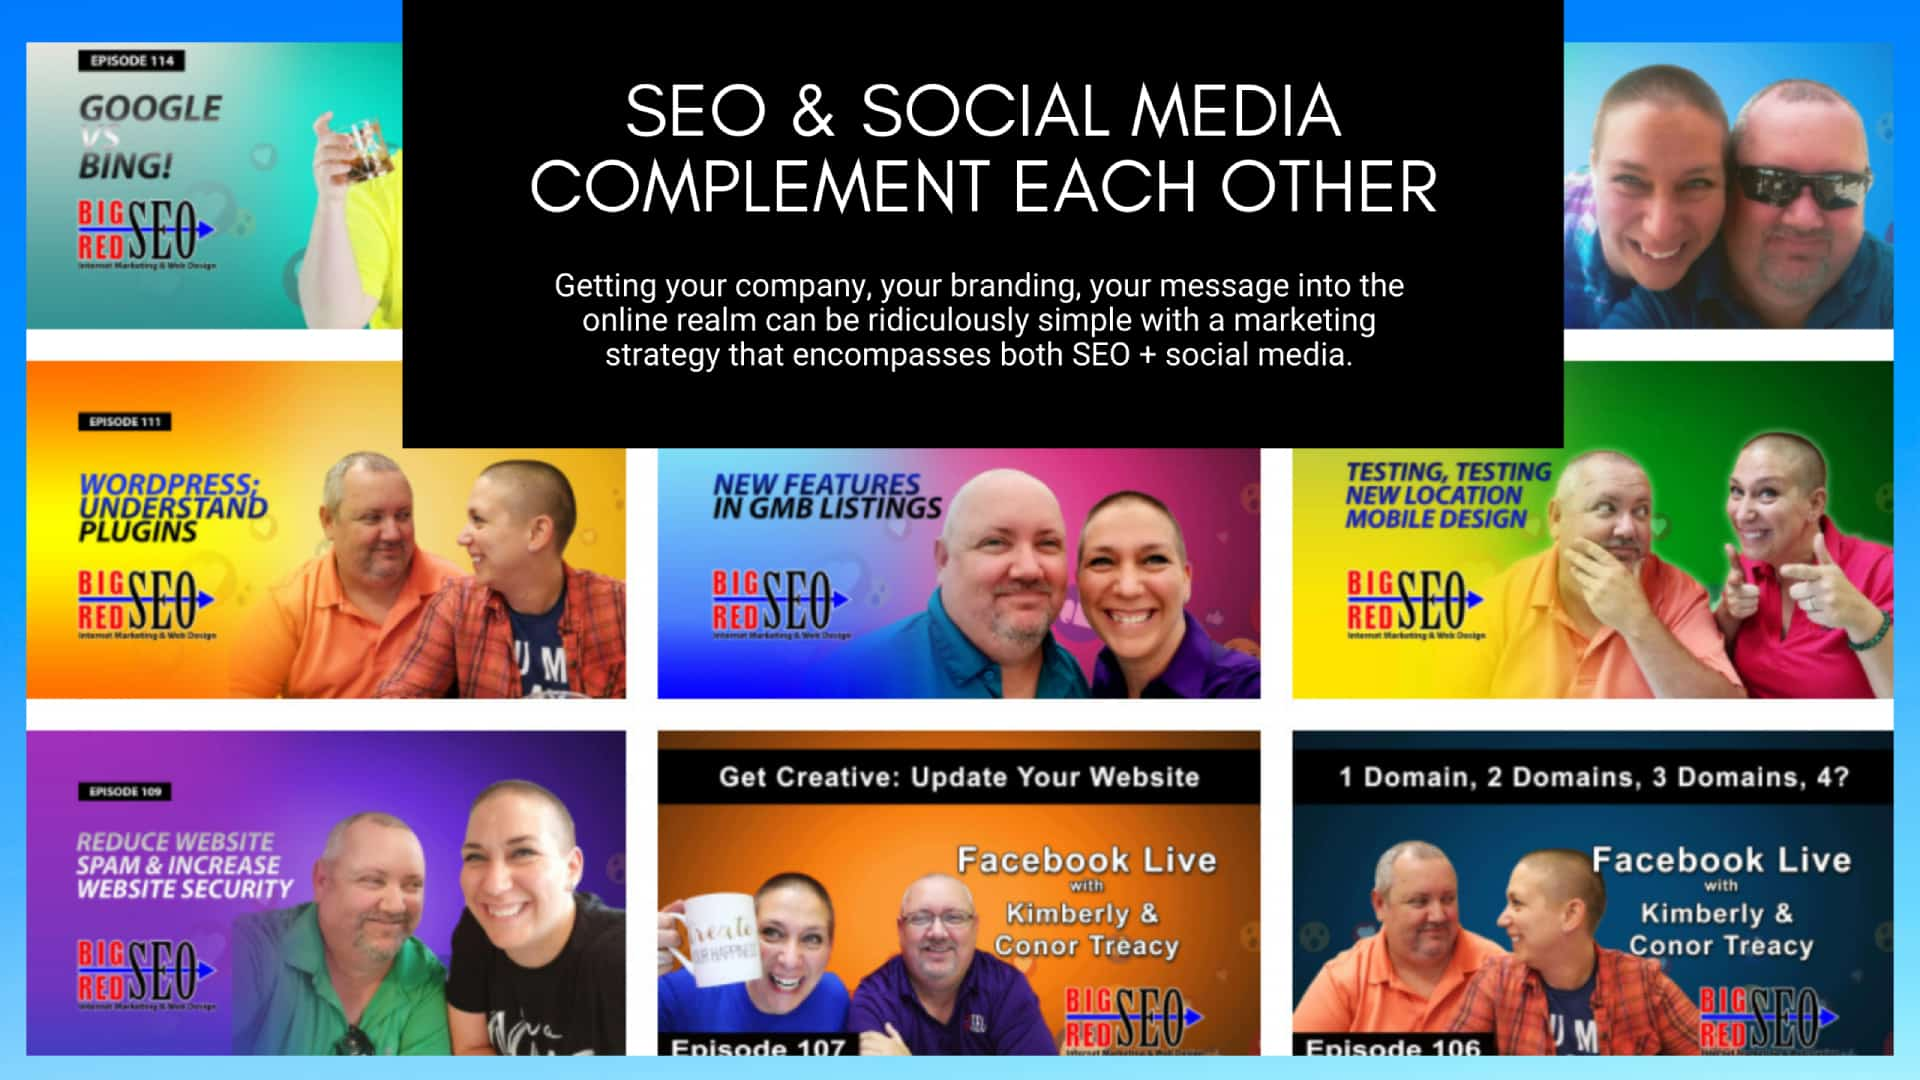 Big Red SEO YouTube videos on SEO services and website design